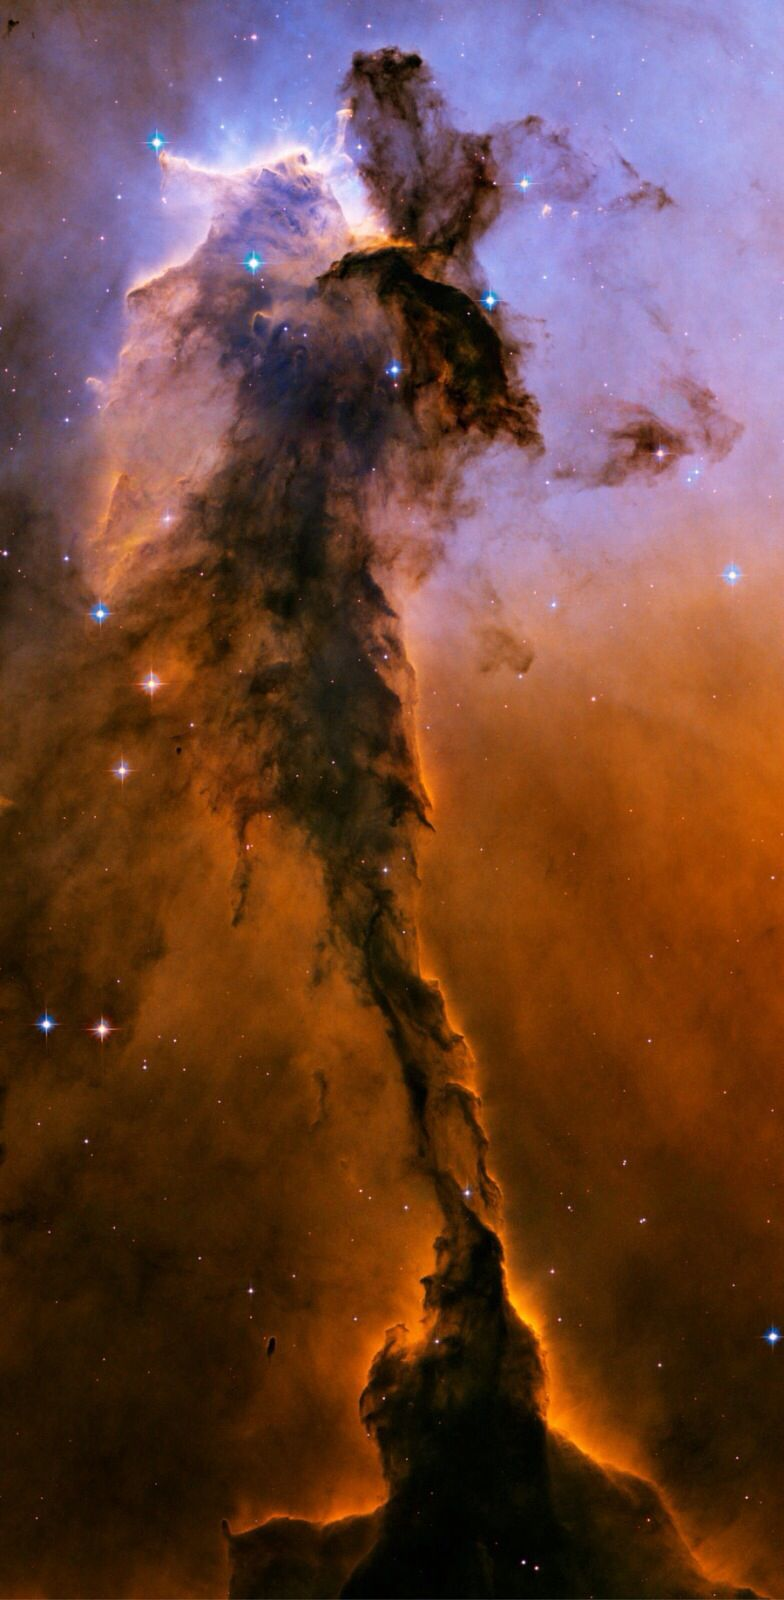 Pin by Nathan Jackman on Space pictures Eagle nebula